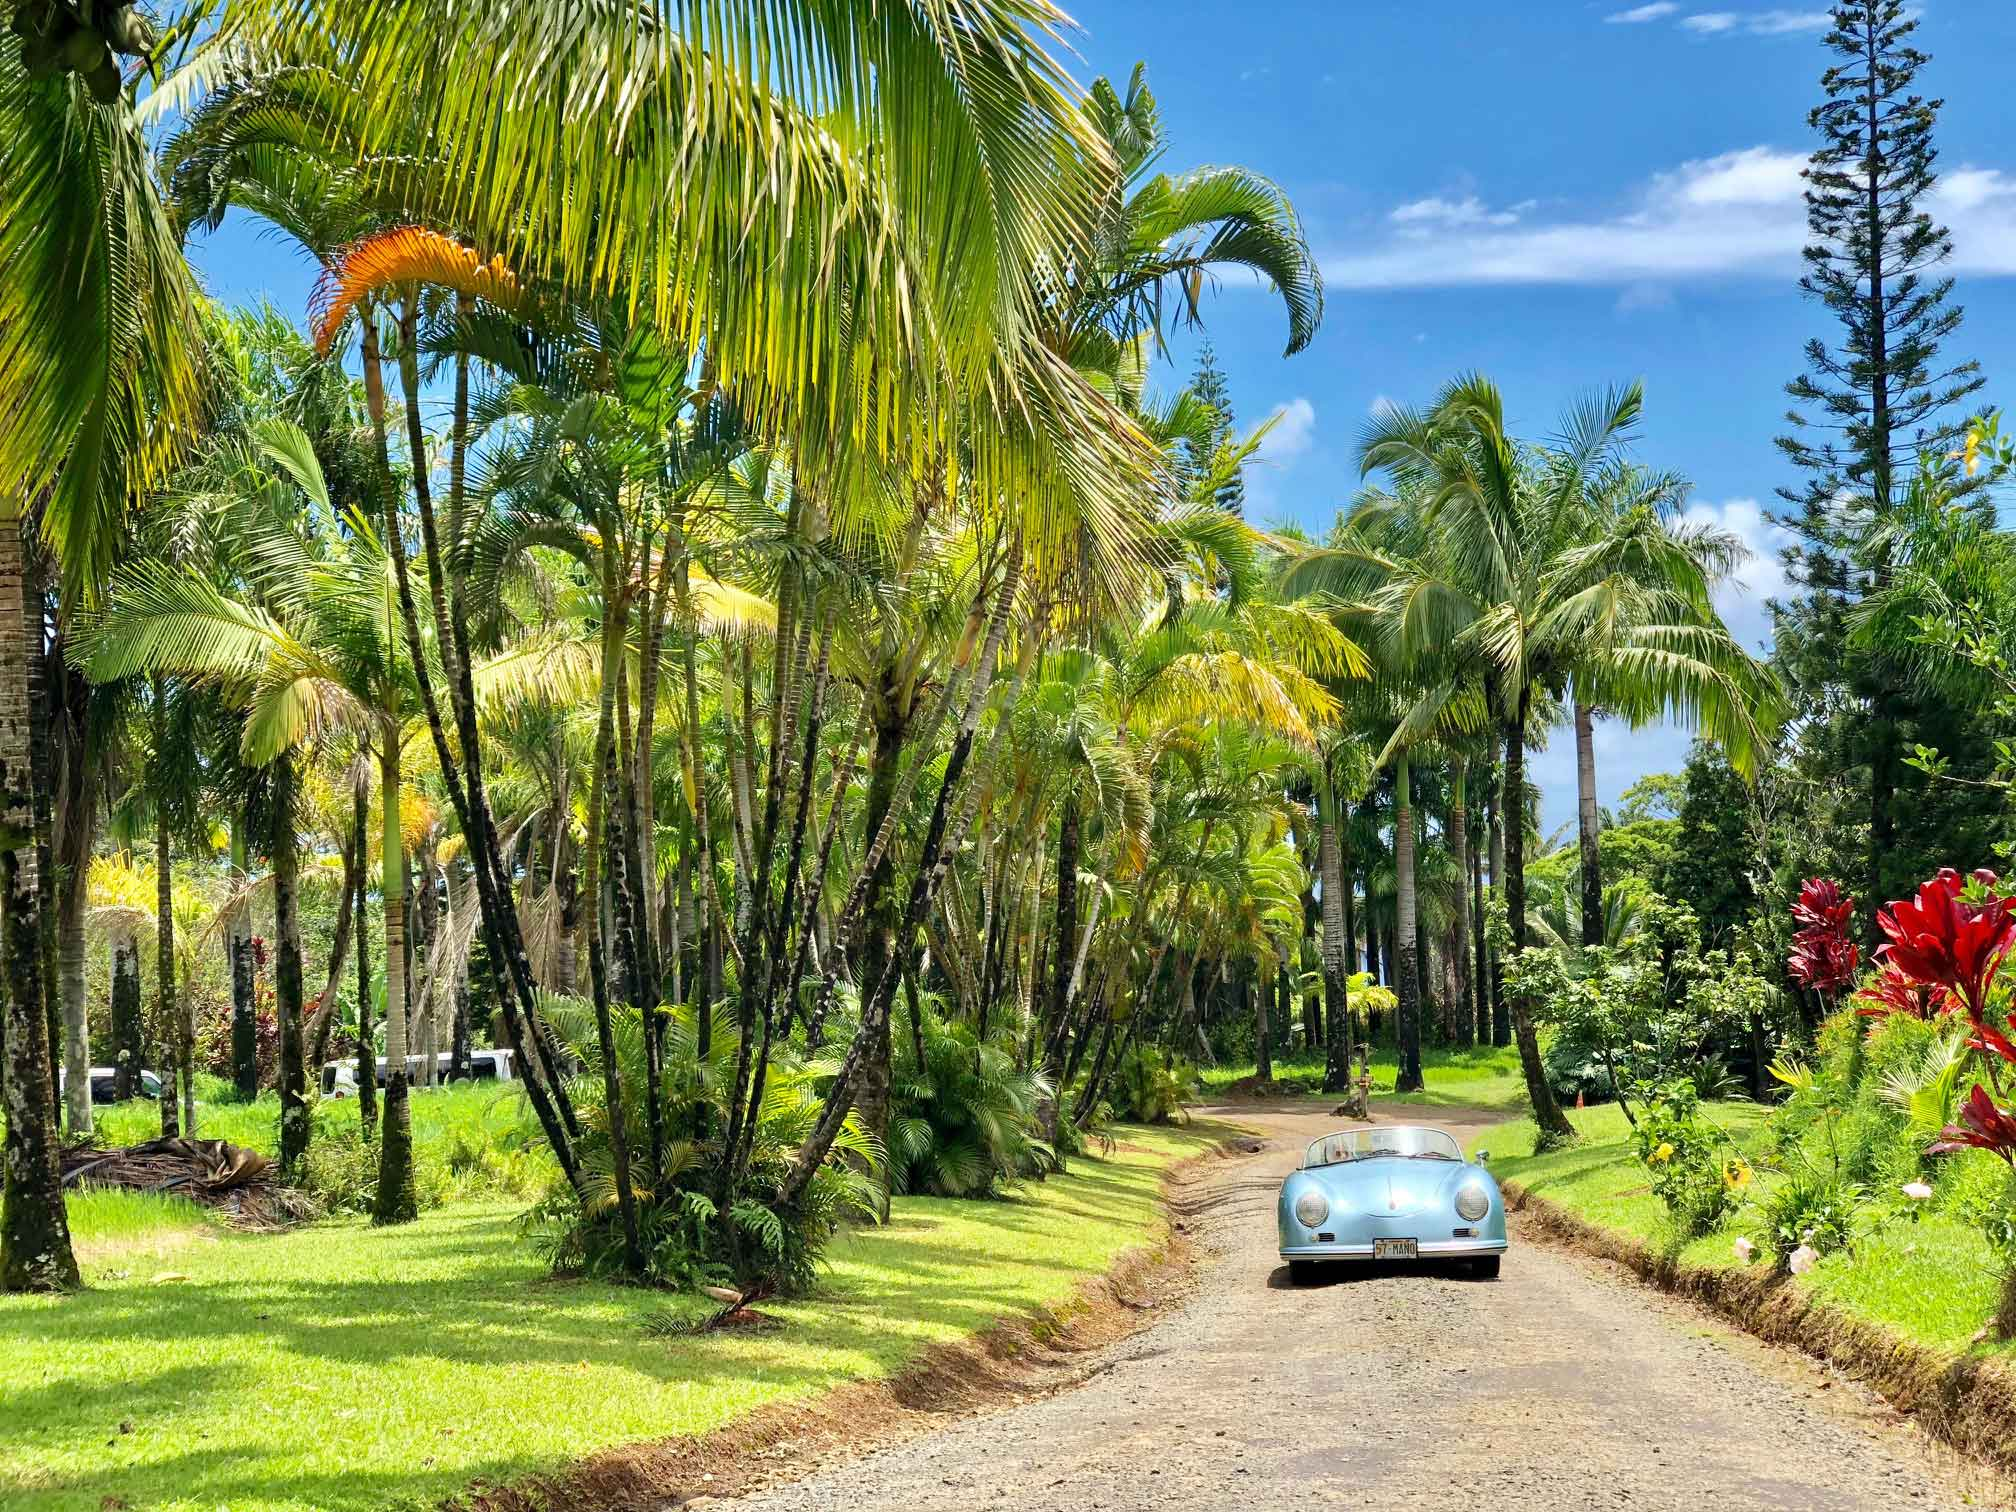 visiting Maui, what to do in Maui, twin falls maui, lava tubes maui, where to stay in Wailea, Royal Lahaina Resort Luau, where to eat in Wailea, where to stay in Lahaina, where to snorkle in maui, night time snorkle, night time snorkle maui, Haleakala Maui Sunrise Tour, Te Au Moana Luau Dinner, Te Au Moana Luau Maui, luau maui, Haleakala Maui Sunrise Tour review, Haleakala Maui Sunrise Tour cost, labor day weekend Maui, mamas fish house maui, dinner at mamas fish house, what to order at mamas fish house maui, memorial day weekend maui, where to stay in Maui, what to eat in Maui, marriott wailea resort maui, marriott wailea resort rooms, marriott wailea resort breakfast, marriott wailea resort review, royal lahiana resort review, road to hana, garden of eden road to hana, the shaka guide, the shaka guide app, renting a car in maui, planning a trip to maui, 3 day vacation in maui, what to do in three days in maui, is 3 days enough for maui,